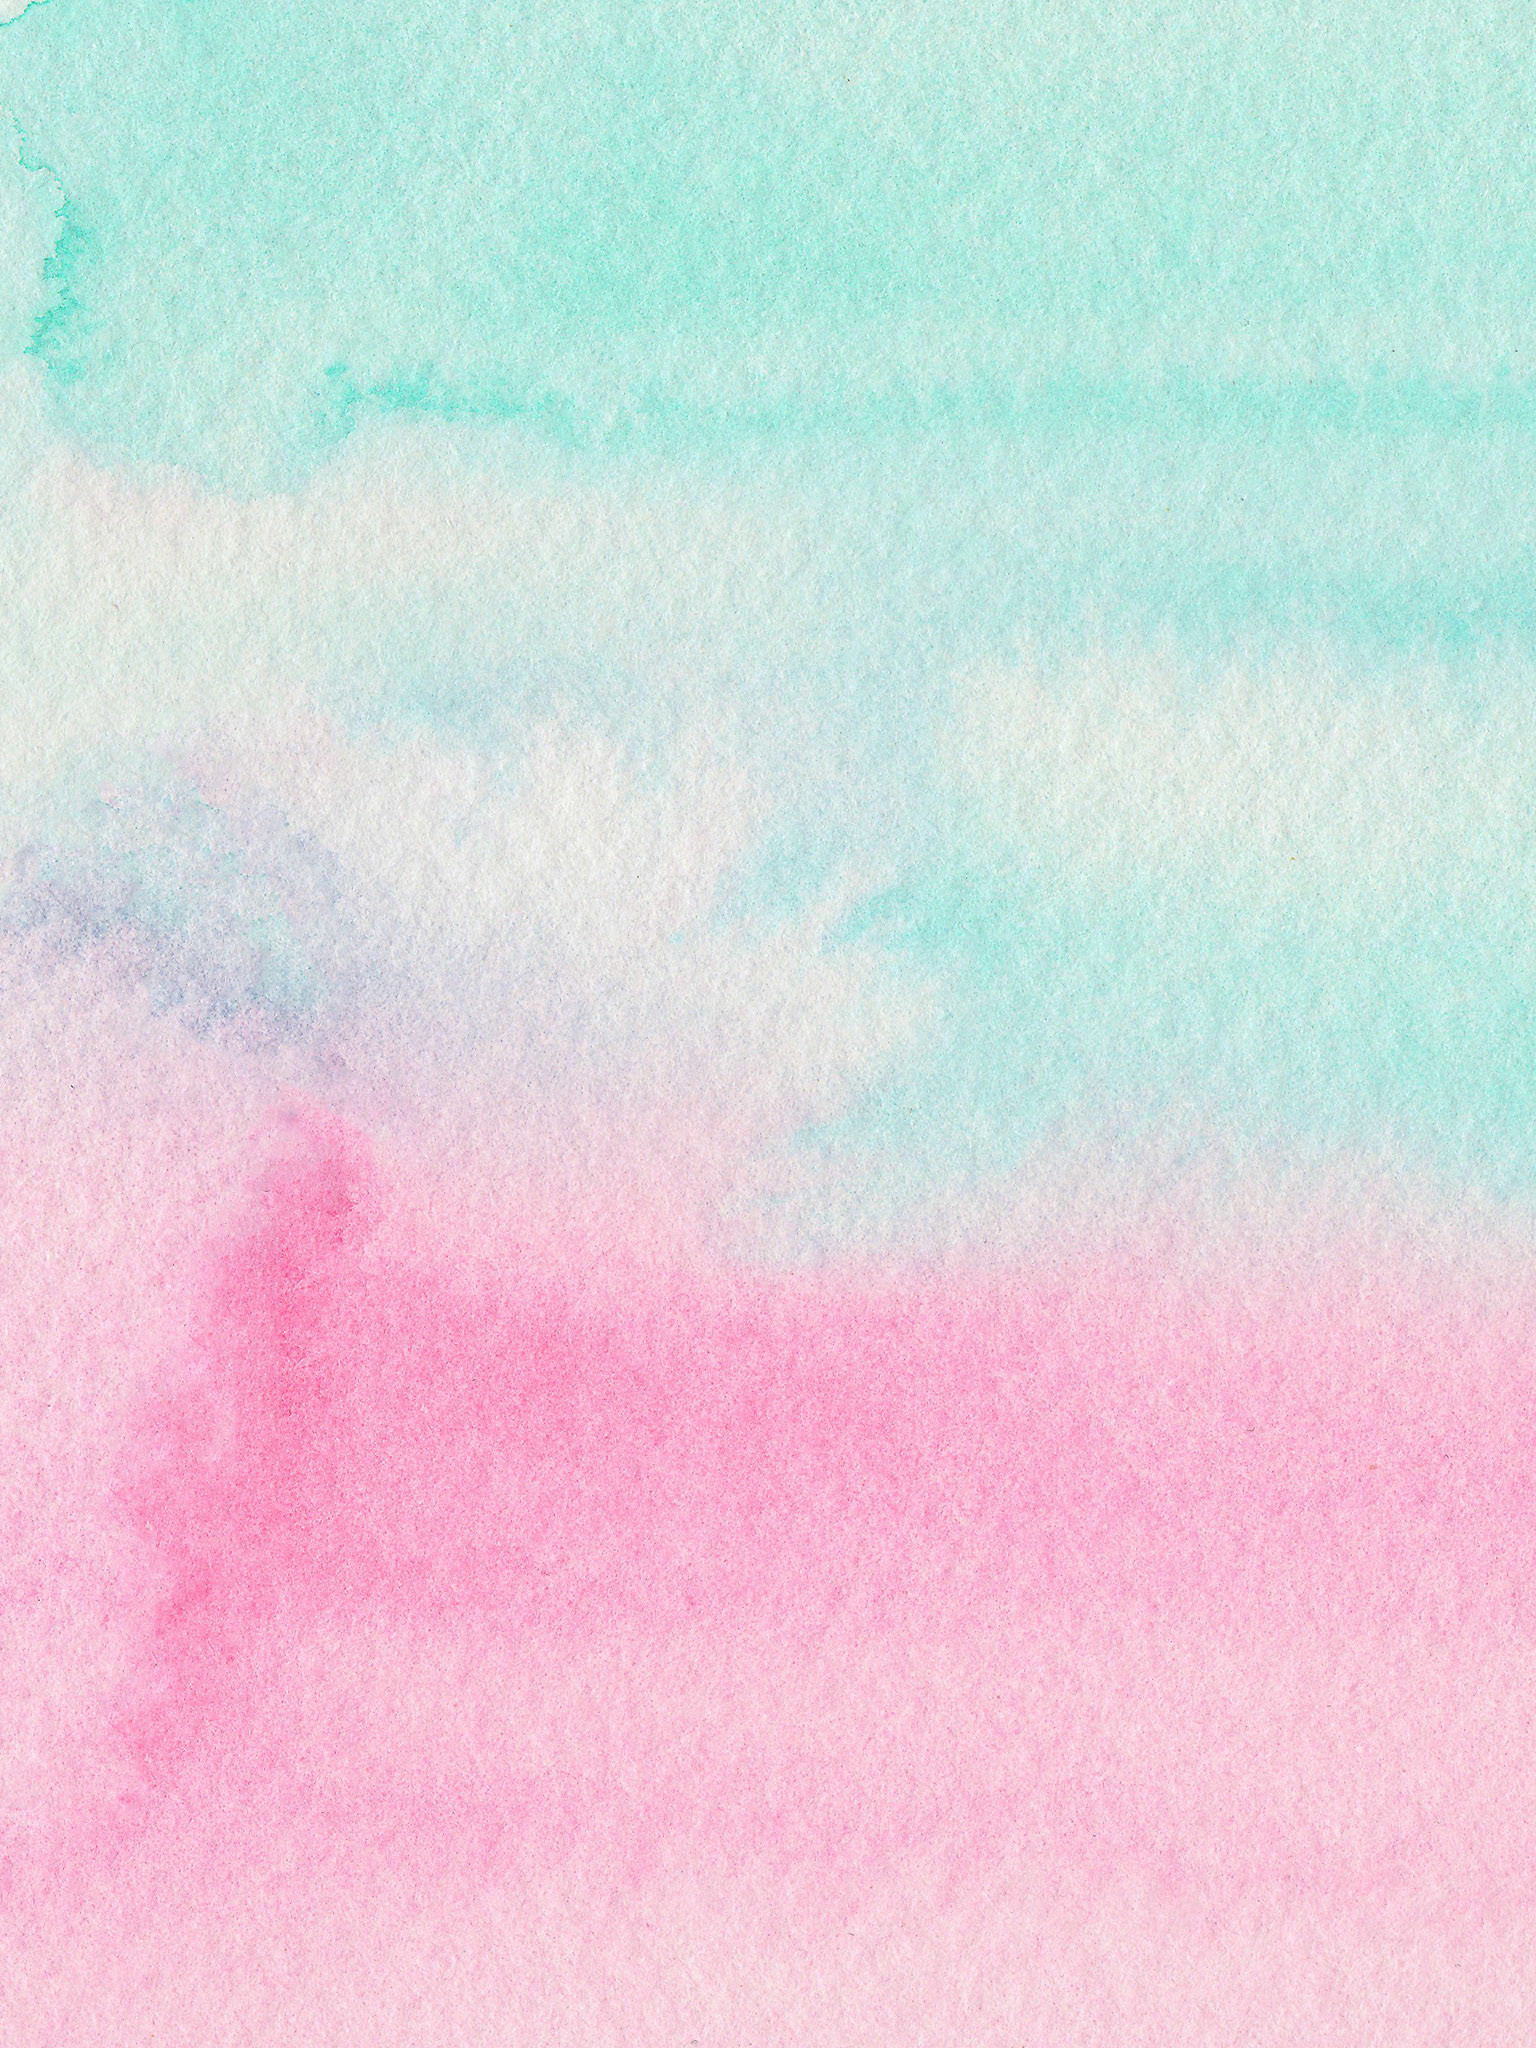 1000+ images about wallpapers on Pinterest | Watercolours, Ombre and  Feathers